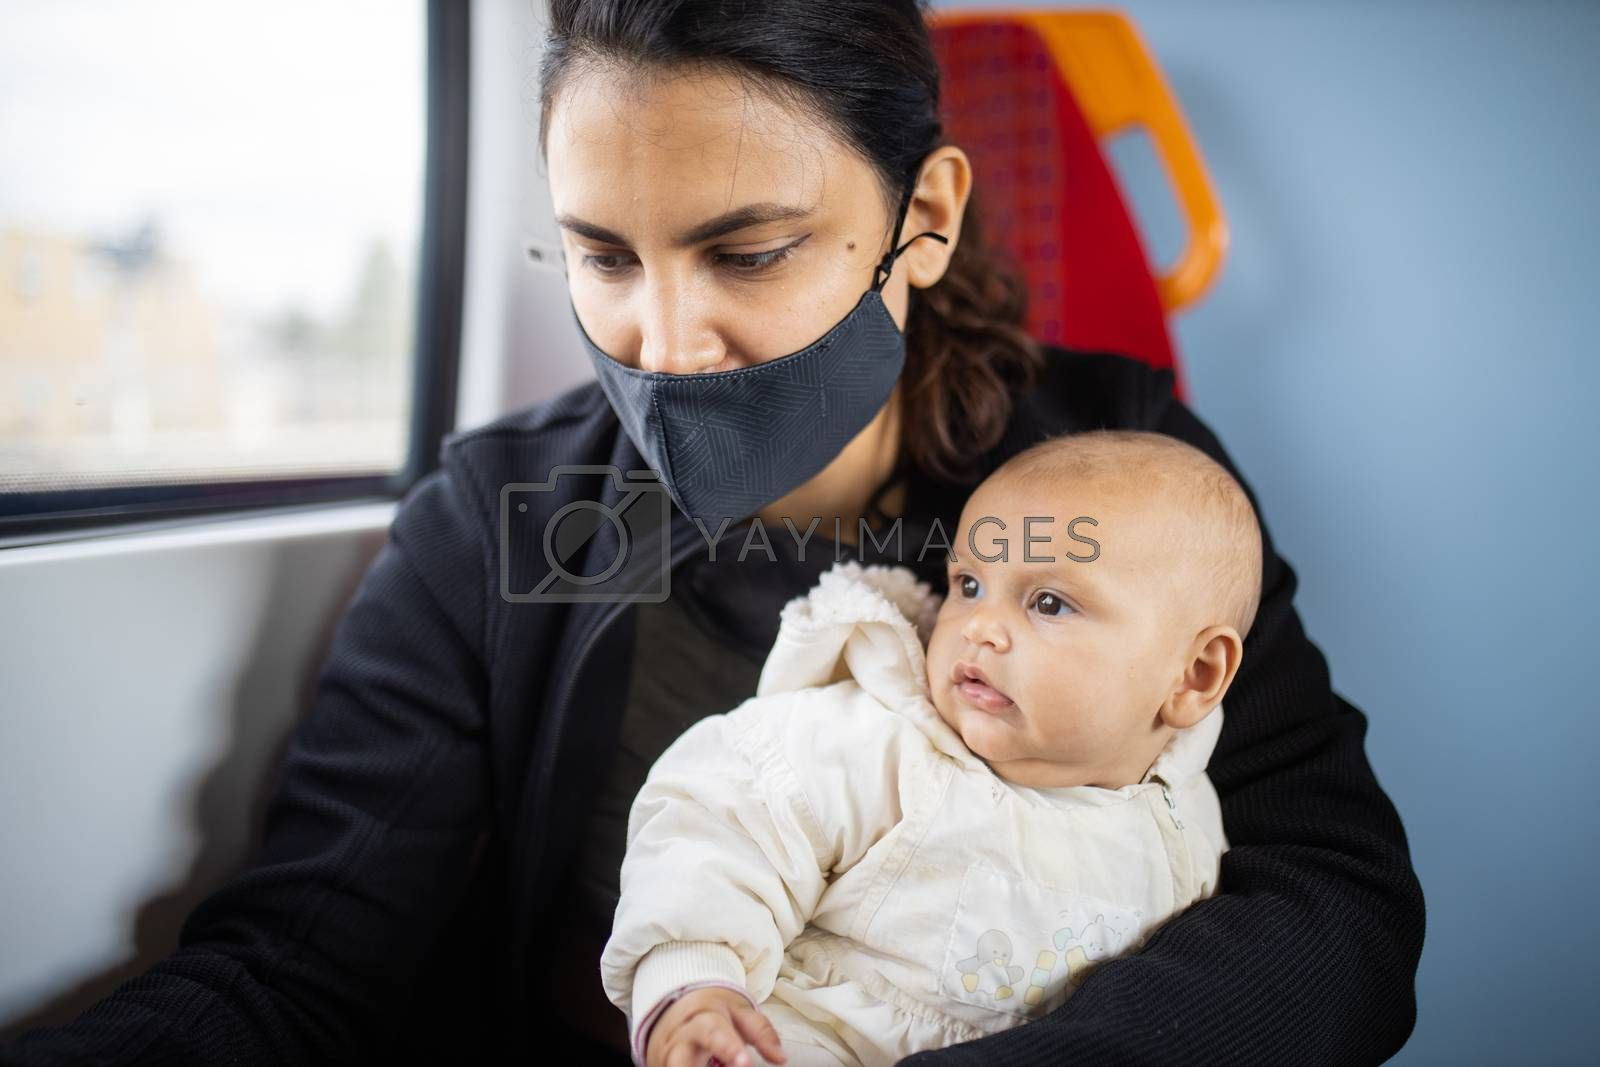 Woman wearing a face mask sitting next to a window in a bus and holding her distracted-looking baby